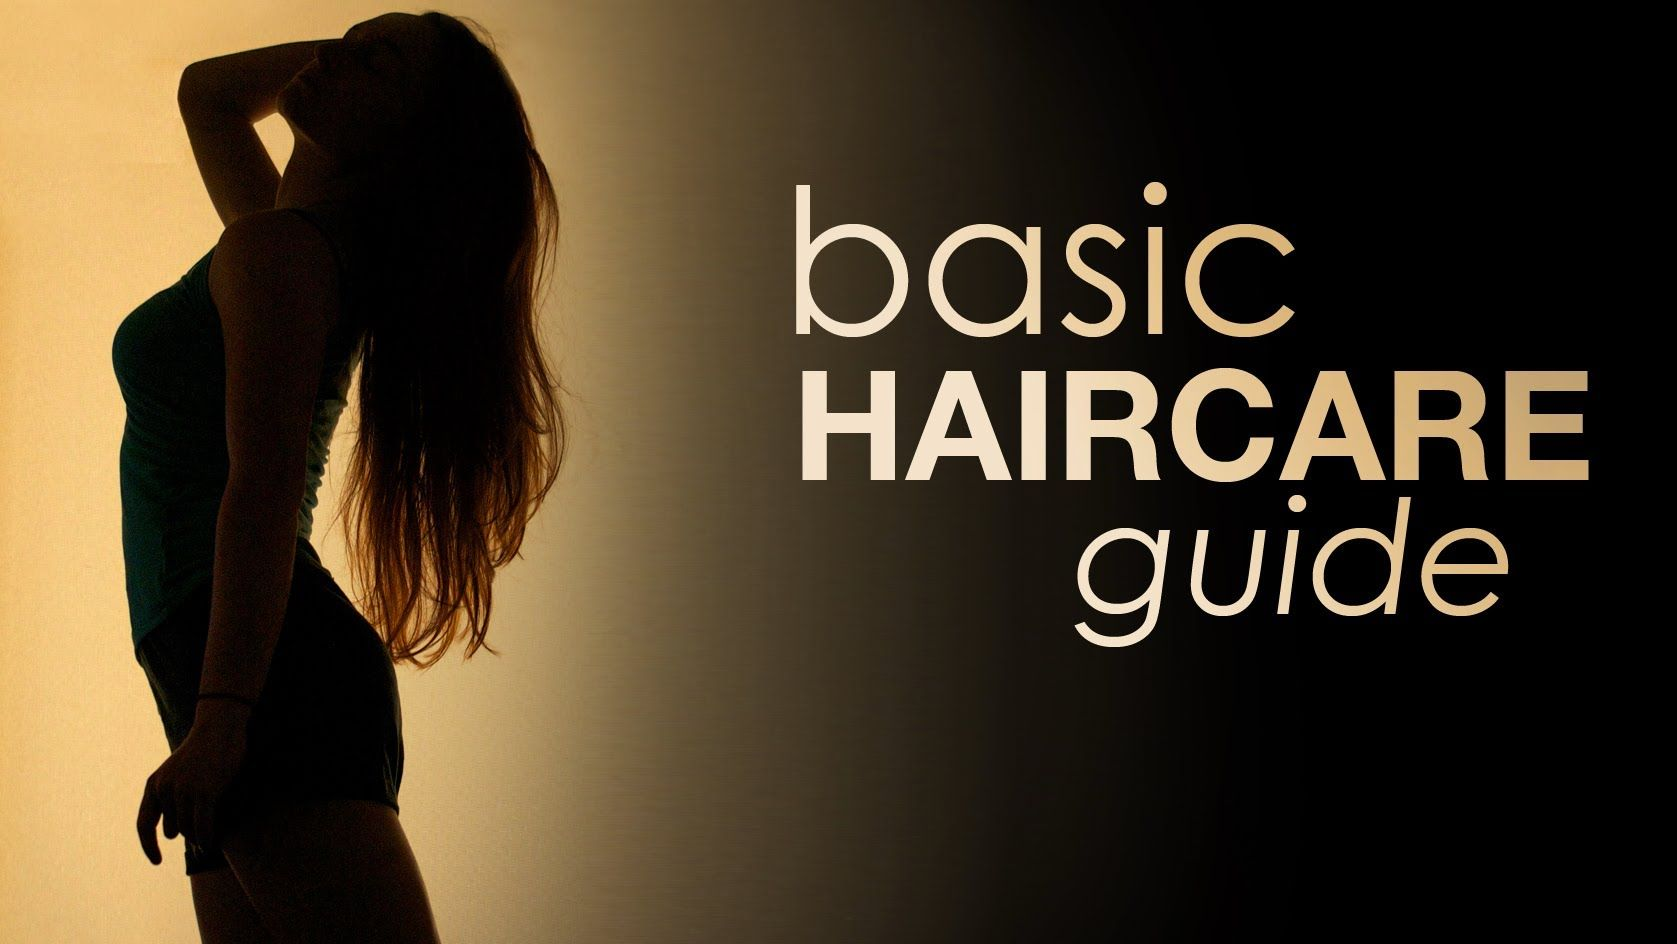 basic haircare guide, with supported by scientific studies